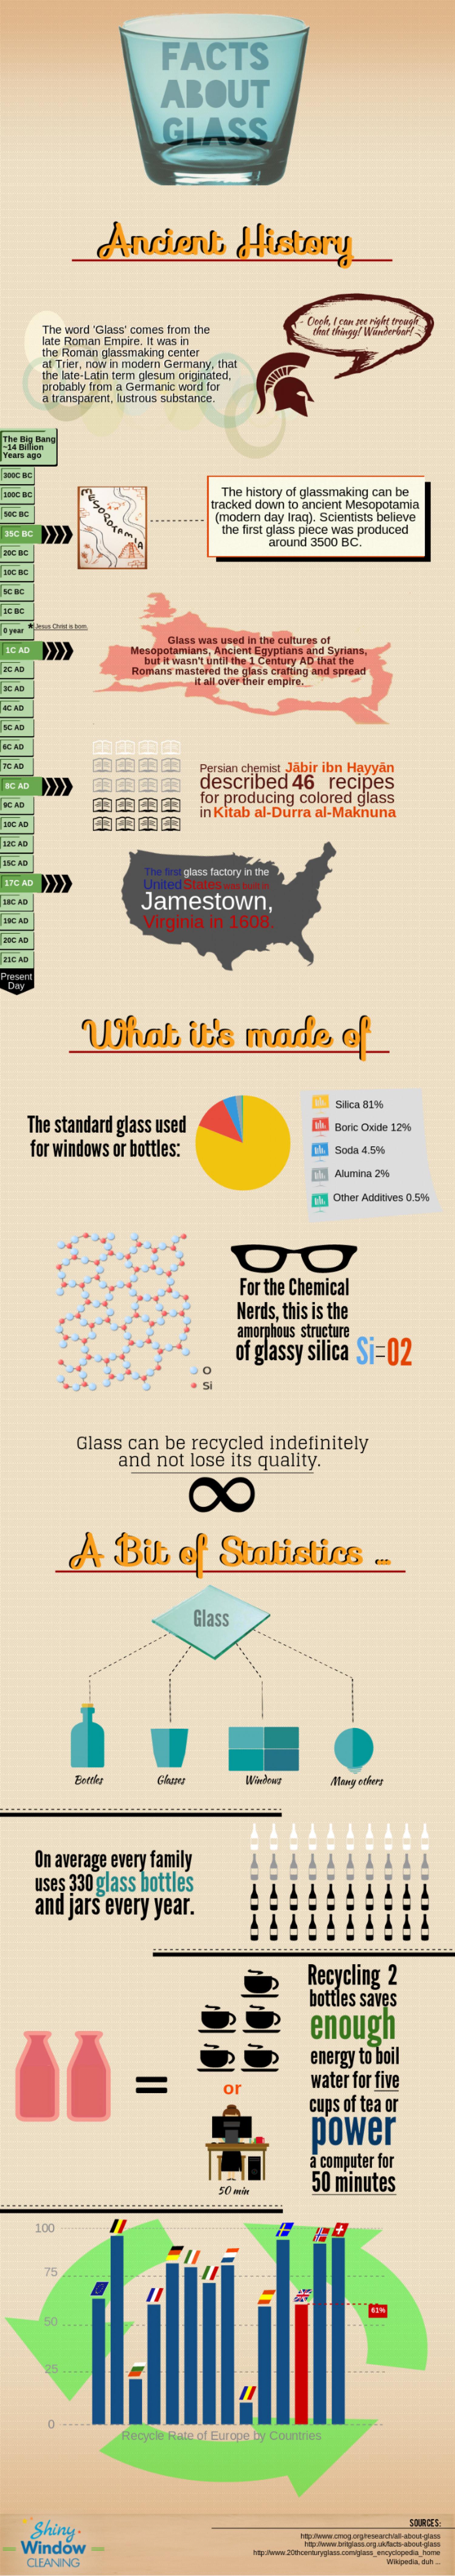 Facts About Glass Infographic